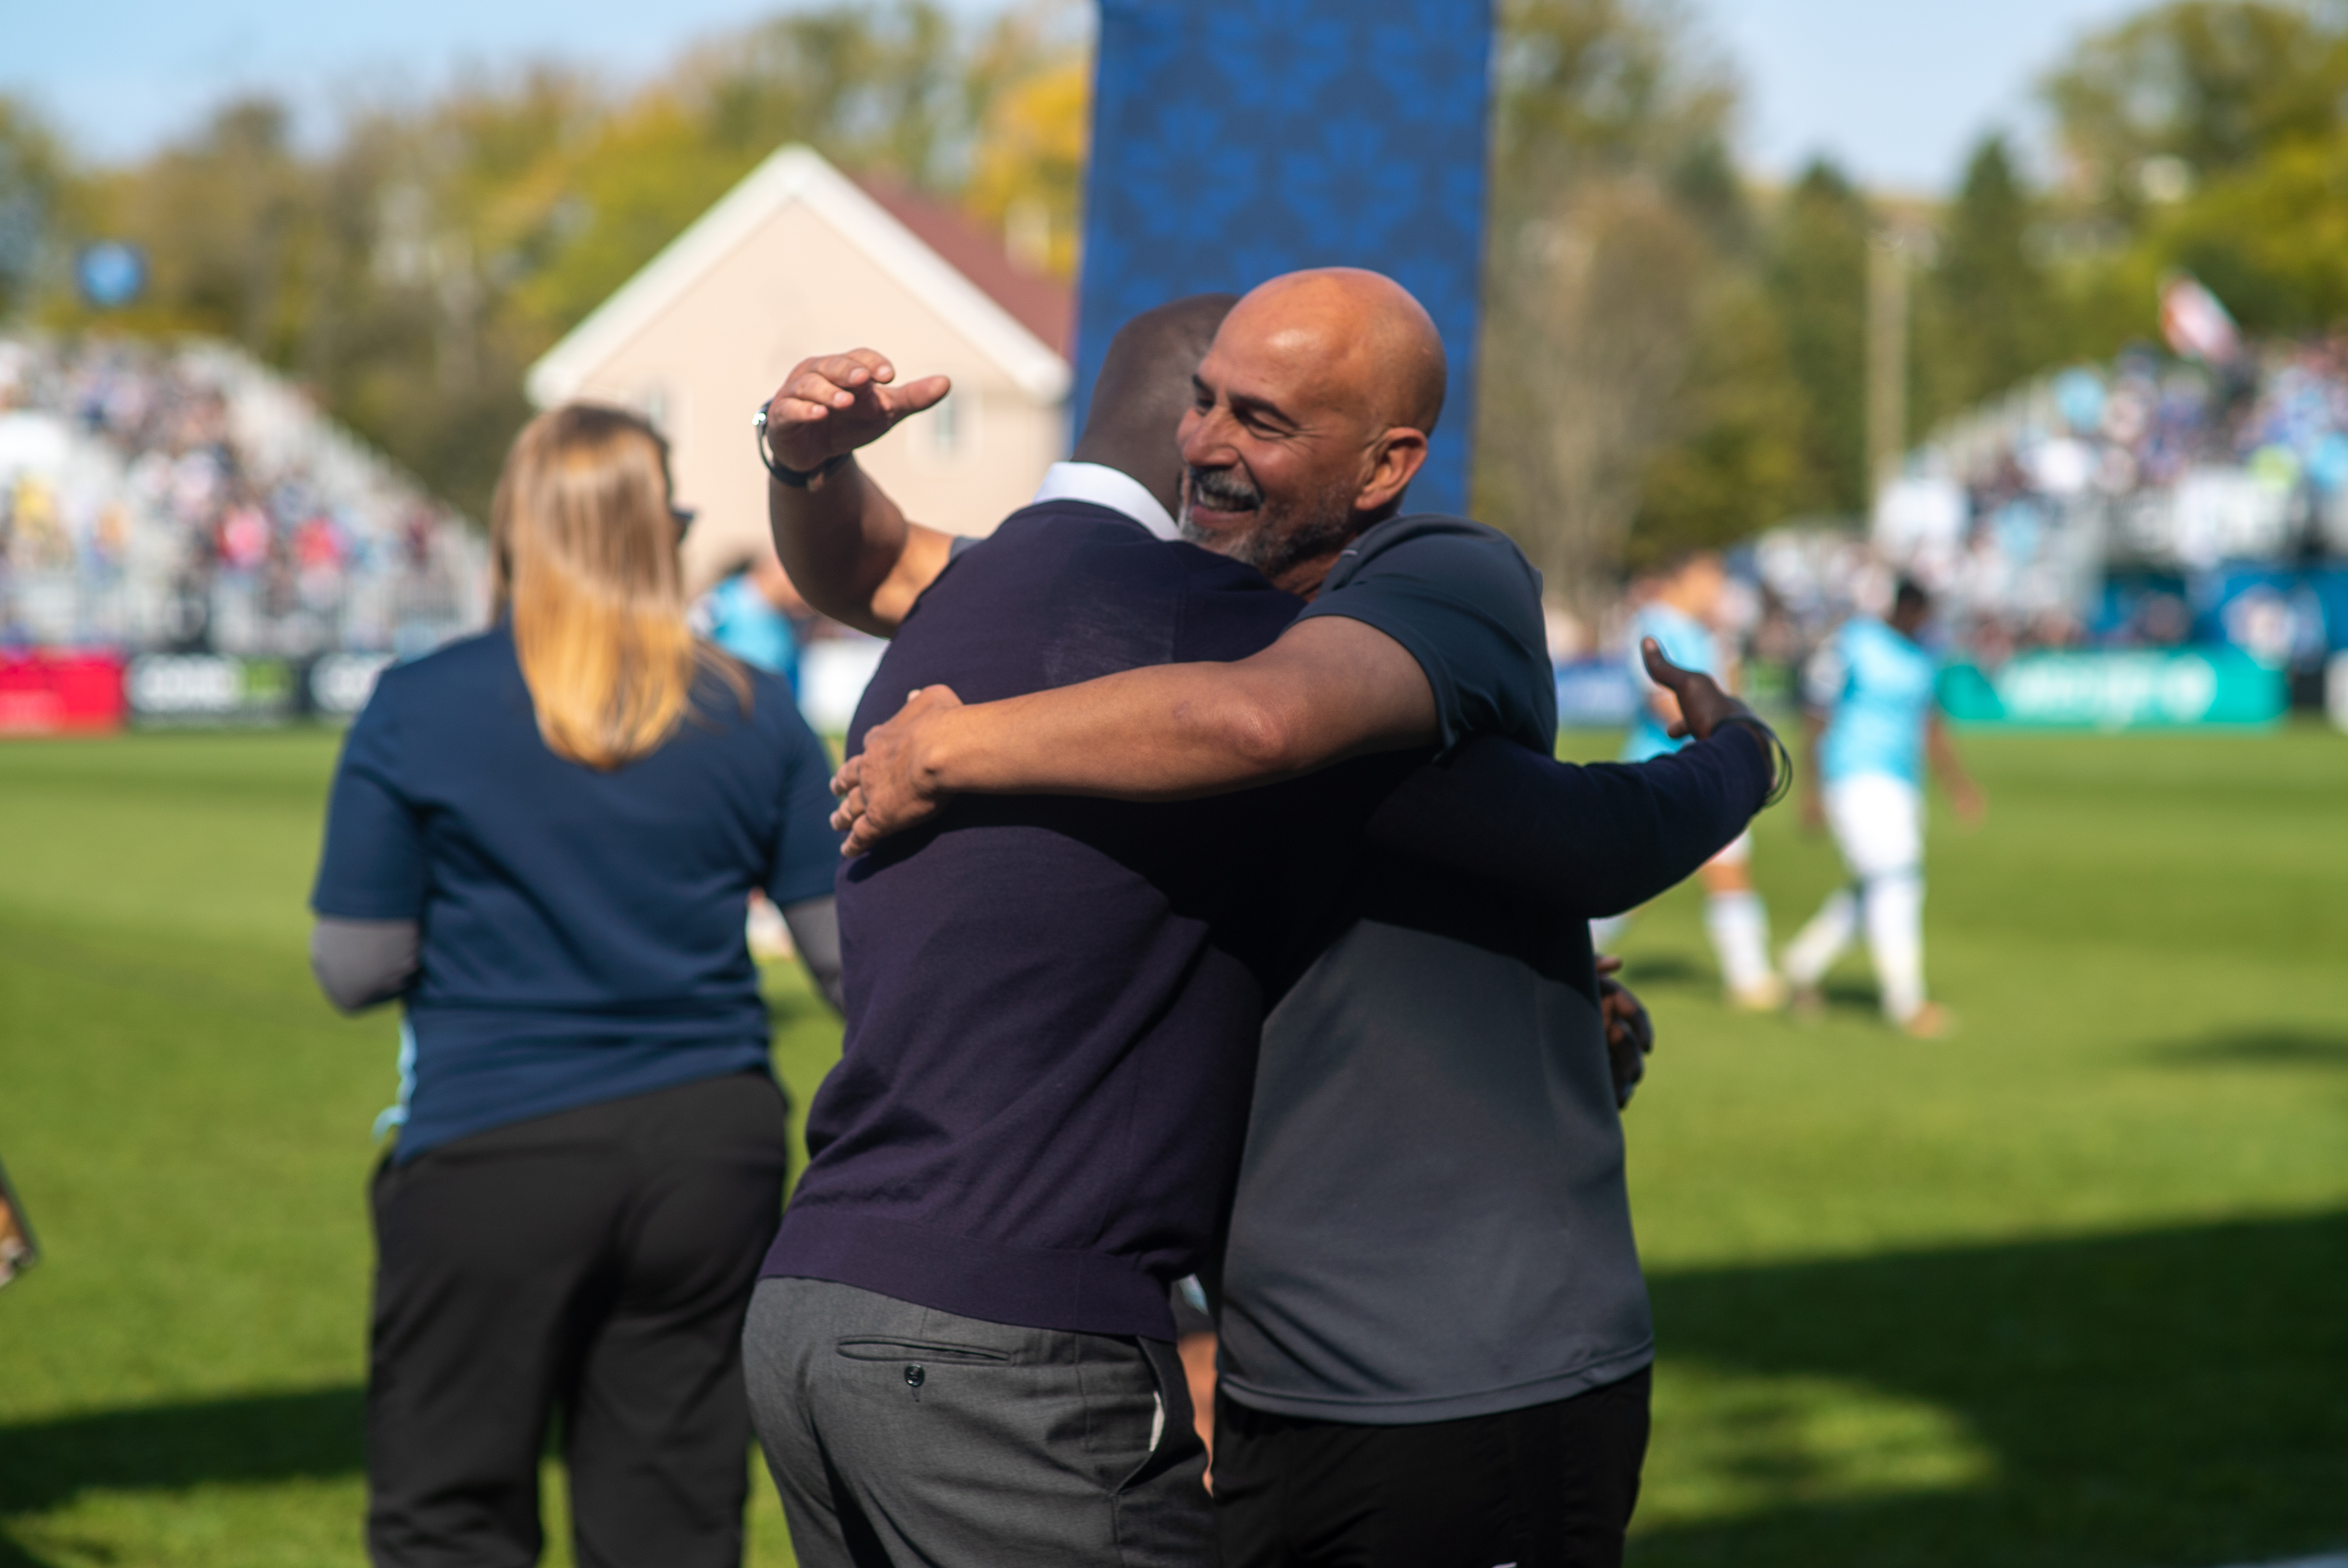 HFX Wanderers coach Stephen Hart embraces Pacific FC opposite Pa-Modou Kah. (Dylan Lawrence/HFX Wanderers)